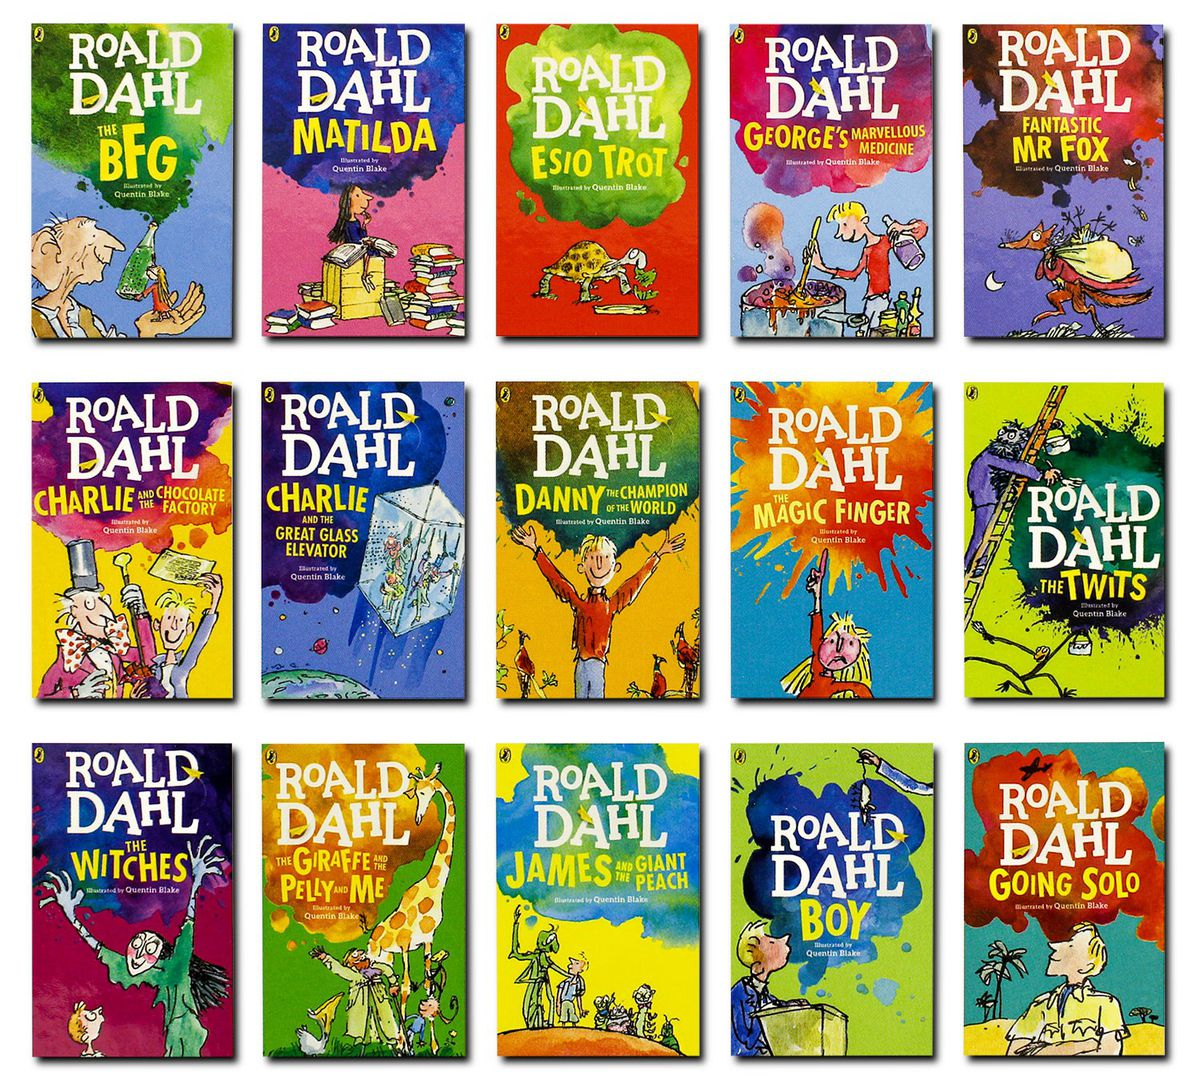 Image result for roald dahl book